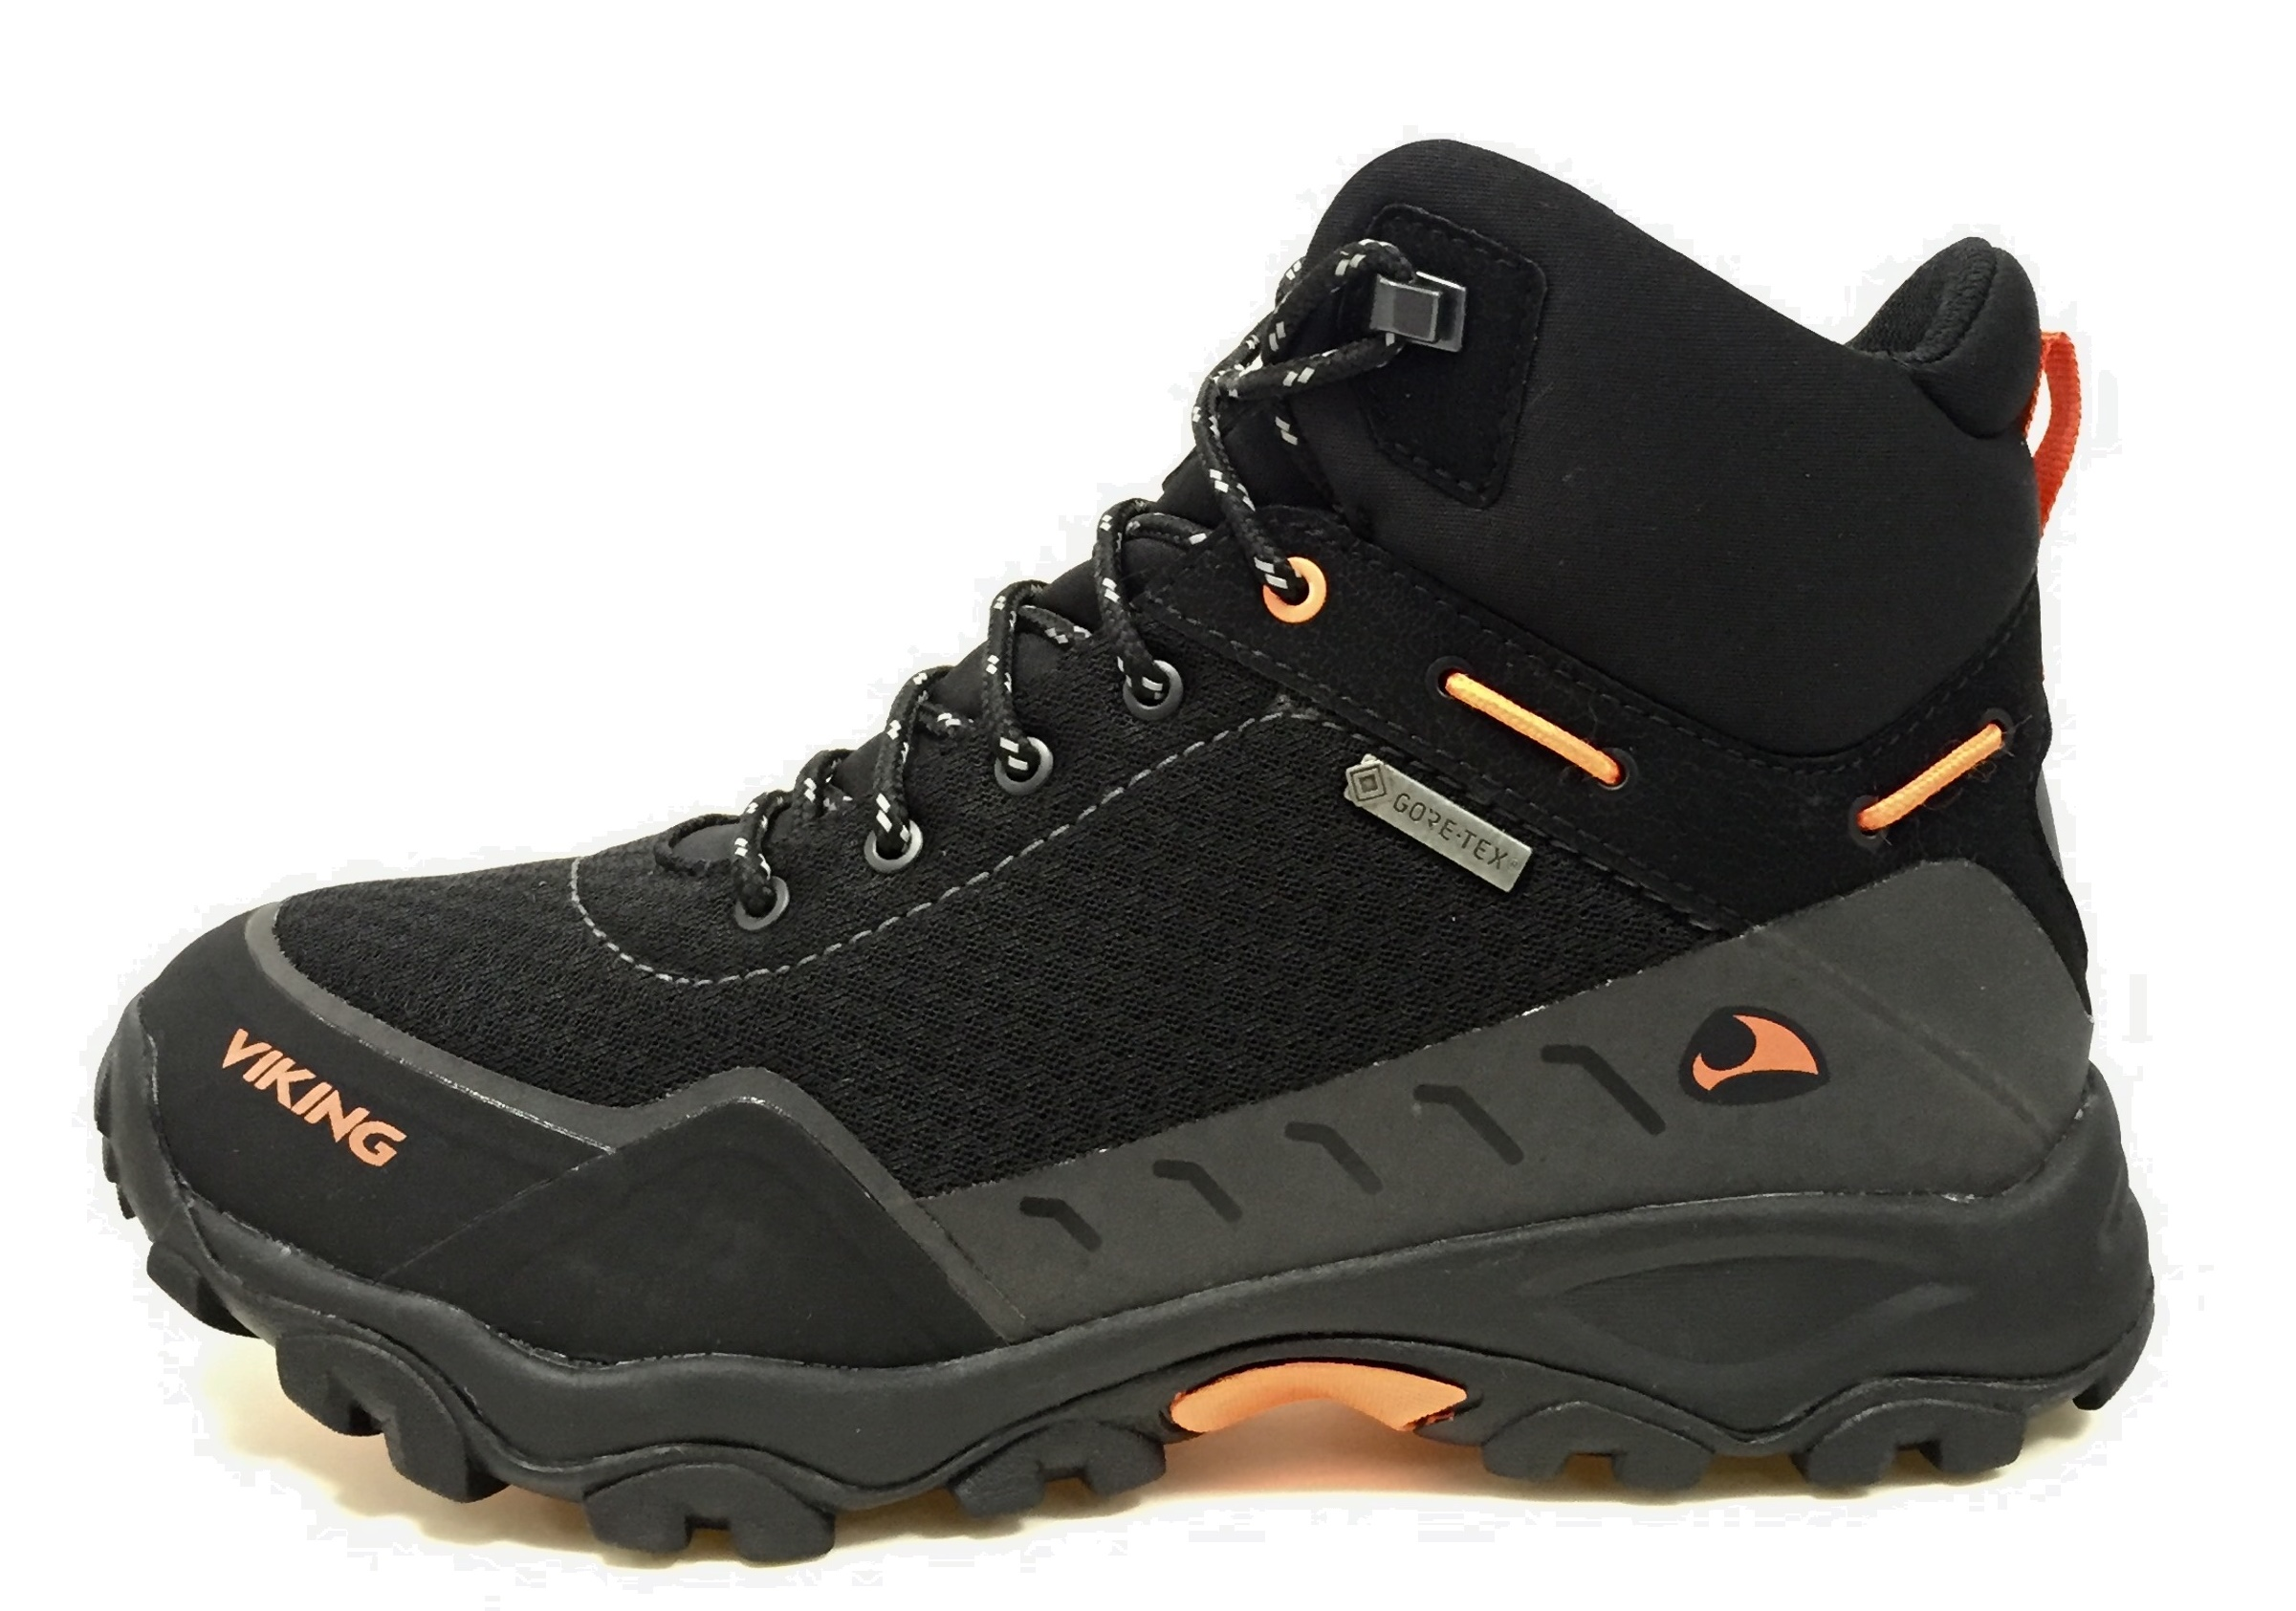 Obuv Viking RASK GTX 3-88430-231 Junior black/orange